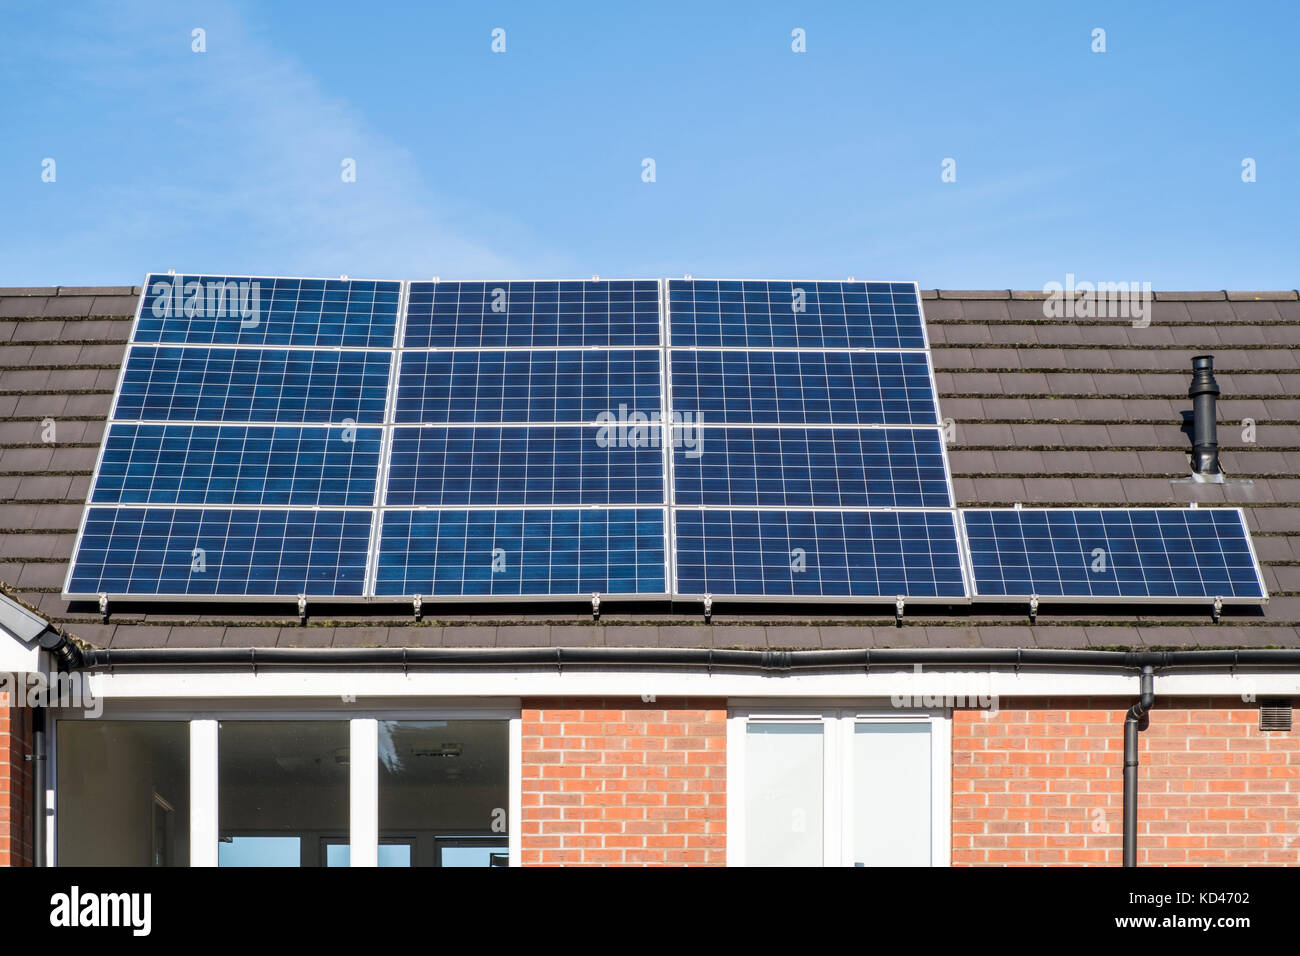 Solar panels on the roof of a house, Nottinghamshire, England, UK - Stock Image